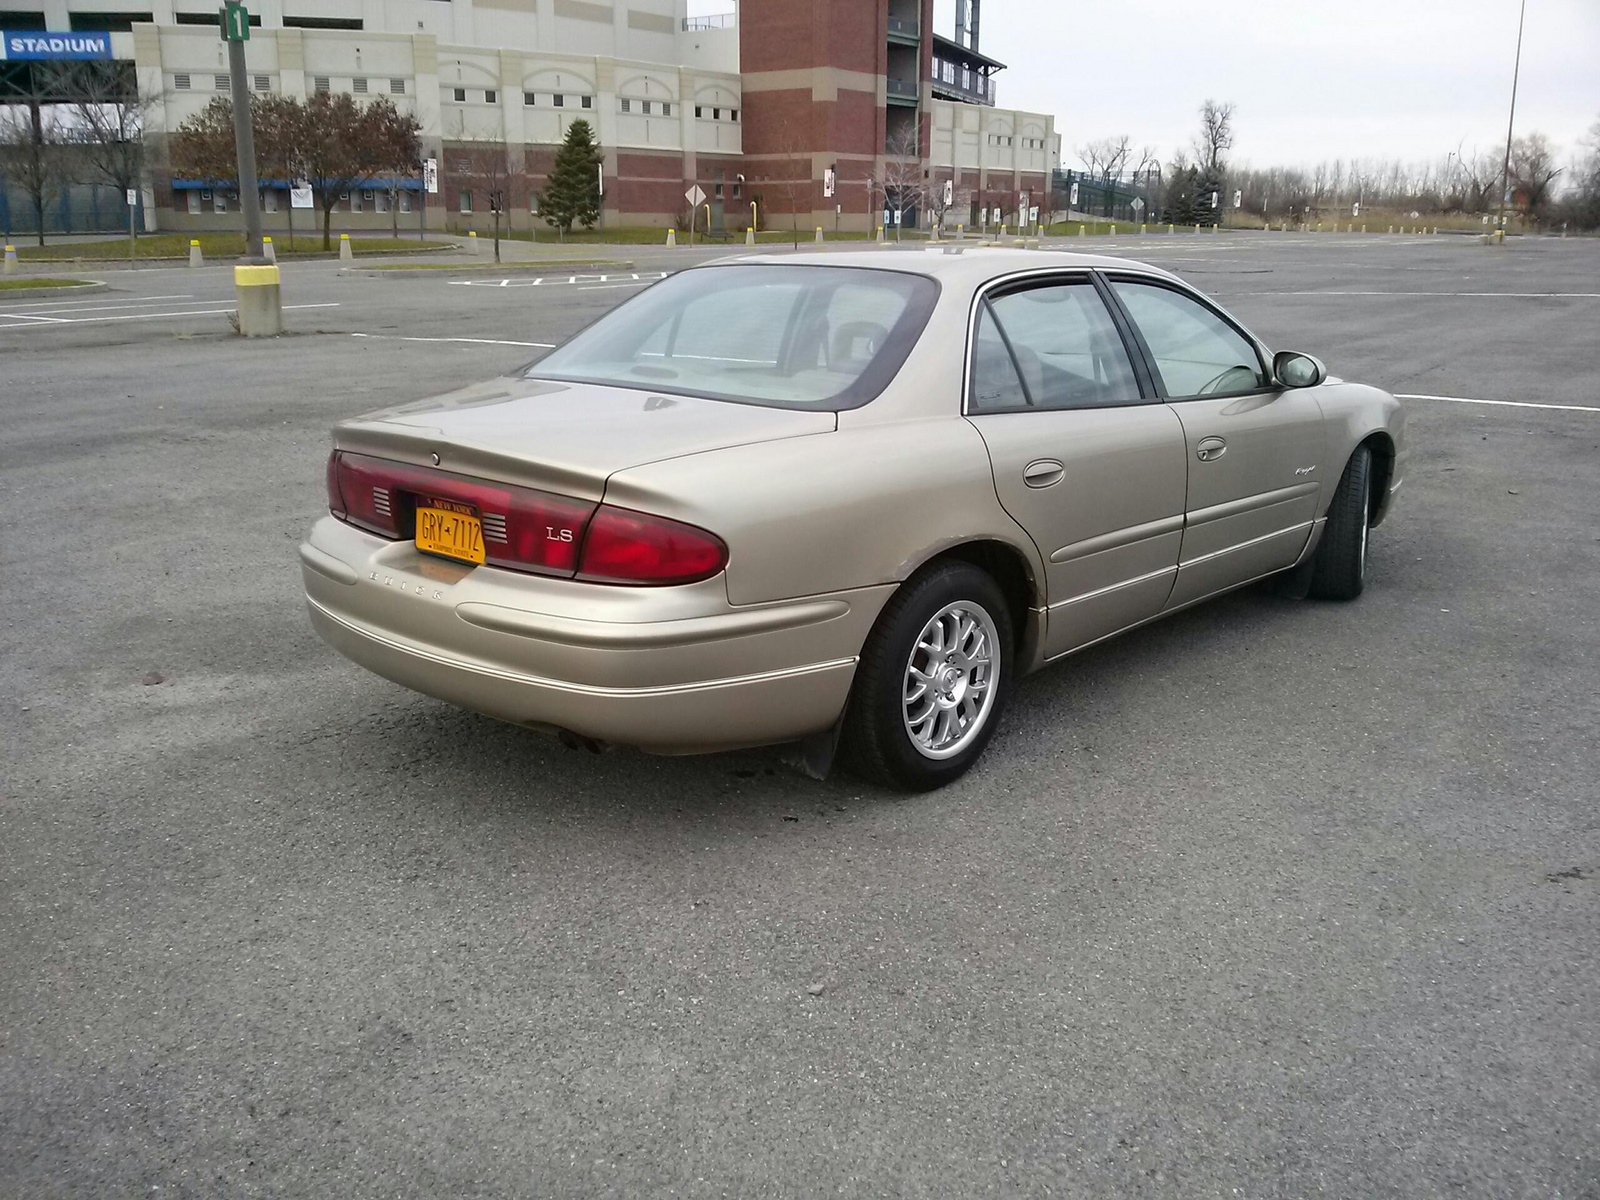 2000 Buick Regal - Overview